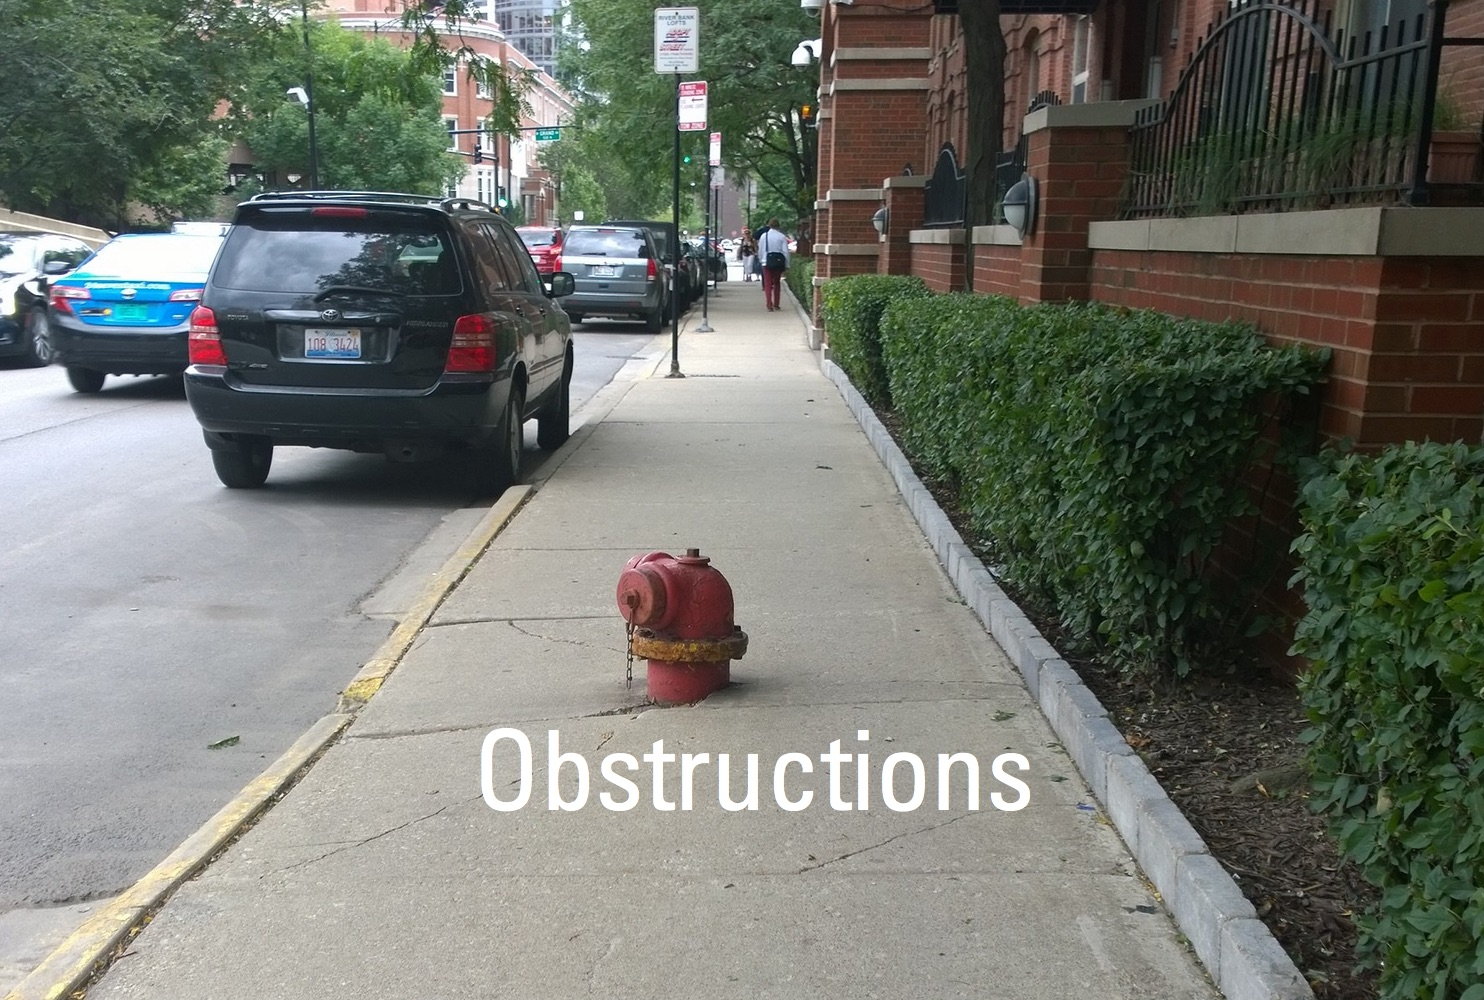 Obstructions